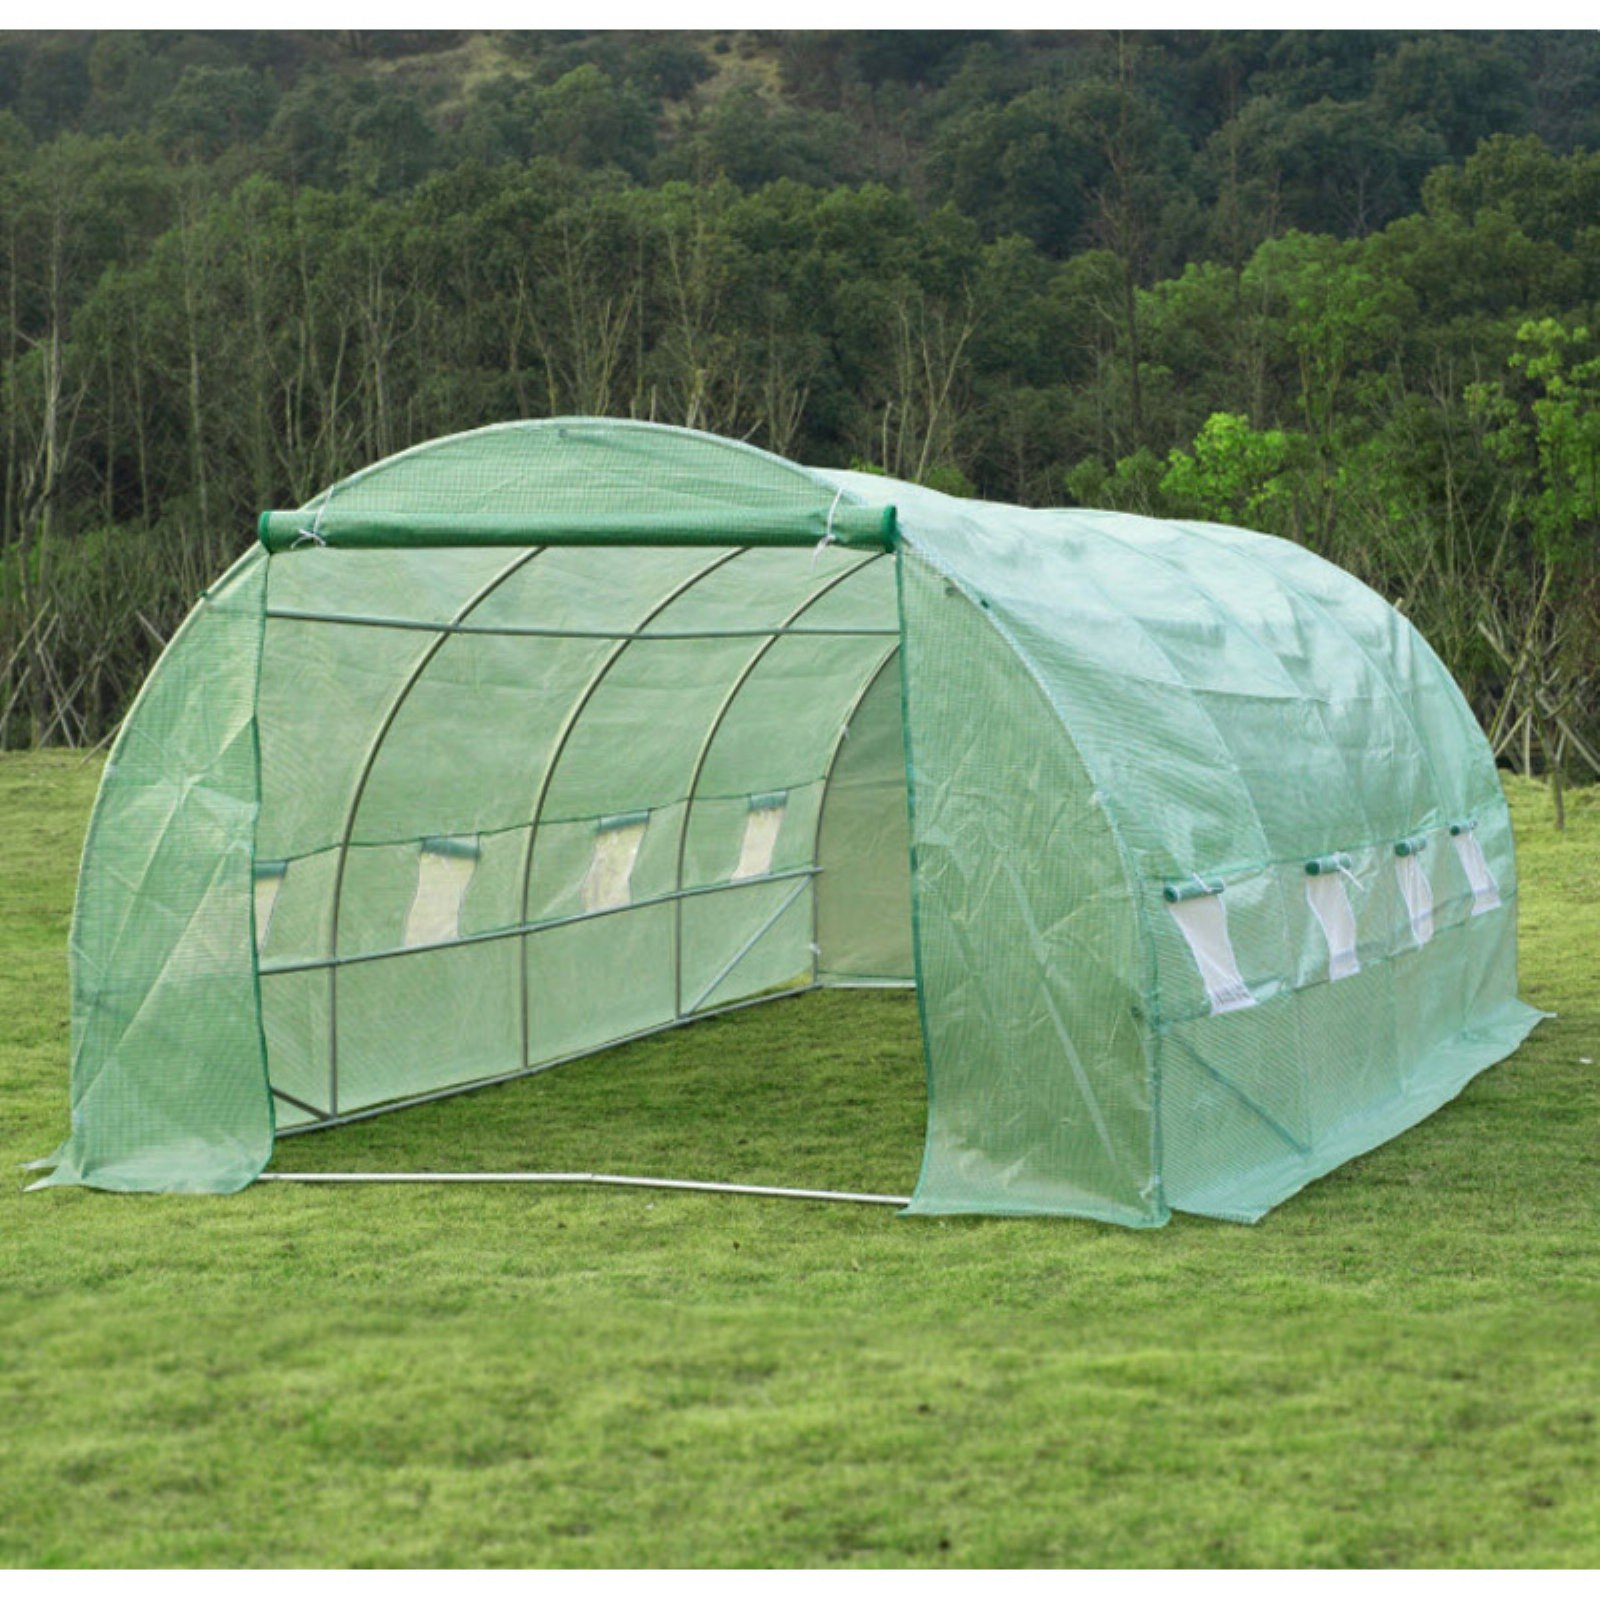 Outsunny Portable 20 x 10 ft. Walk-In Garden Dome Top Greenhouse